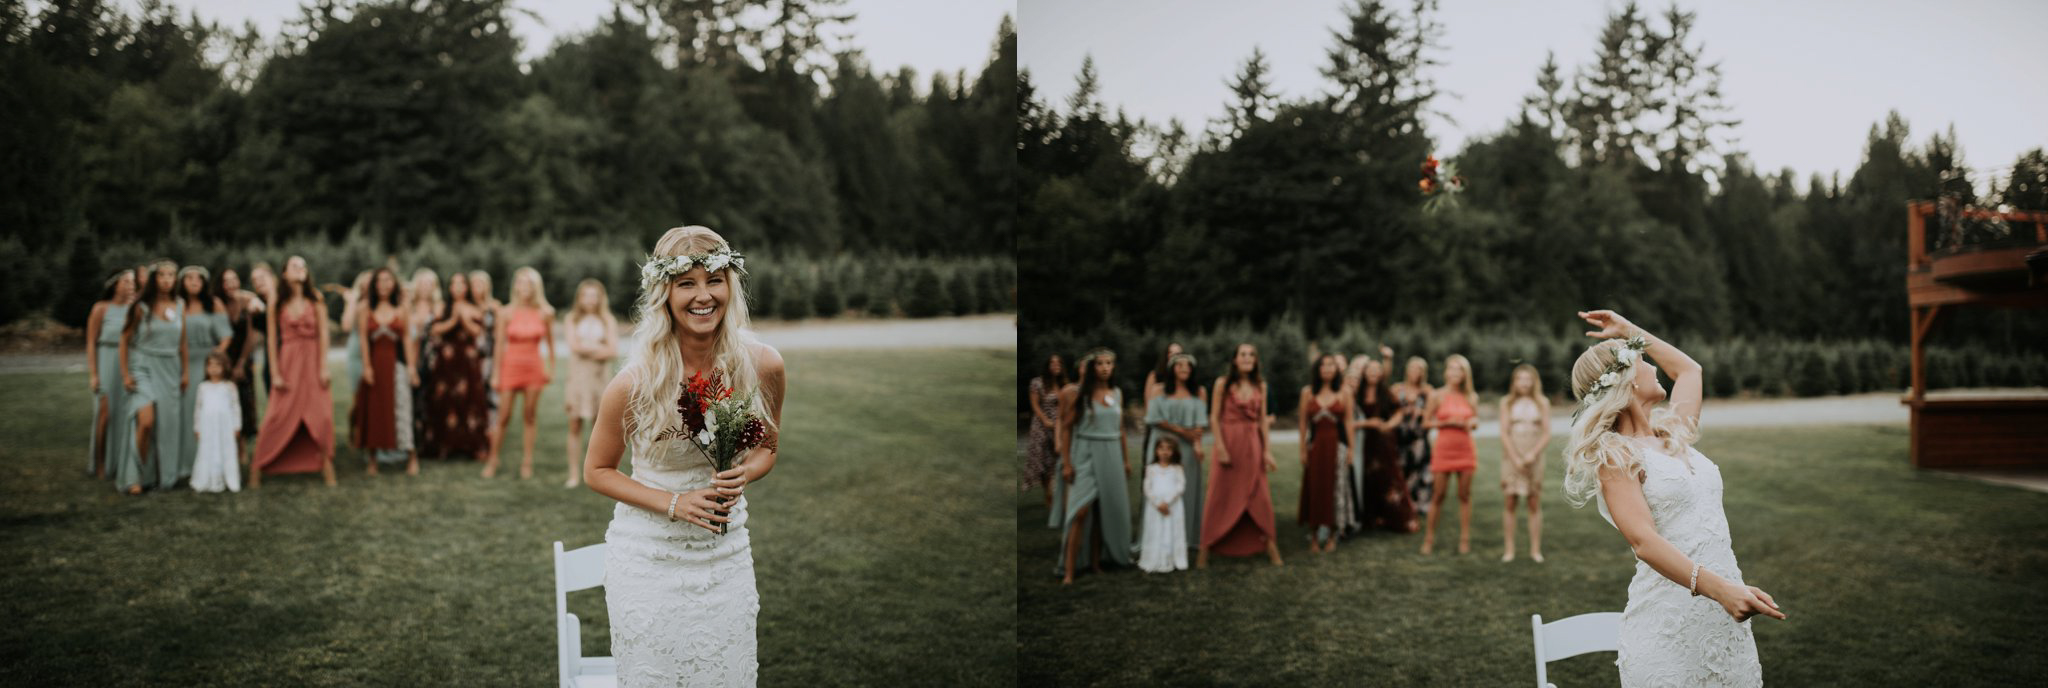 trinity-tree-farm-issaquah-washington-wedding-seattle-lifestyle-photographer-caitlyn-nikula-photography-124.jpg